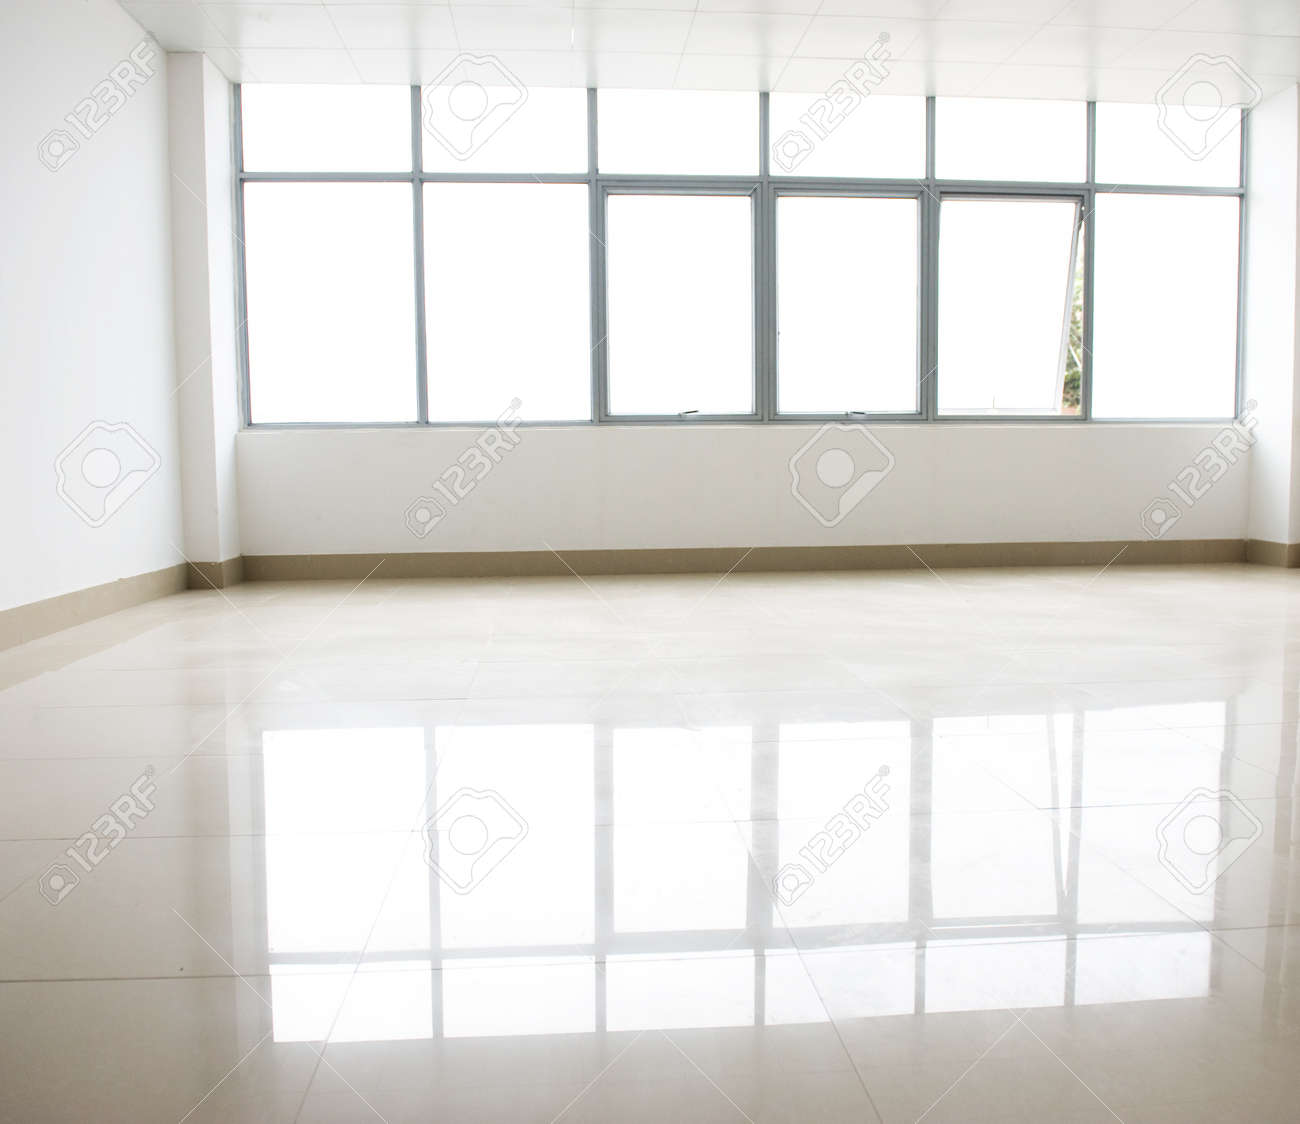 empty internal view with glass wall. Stock Photo - 14142316